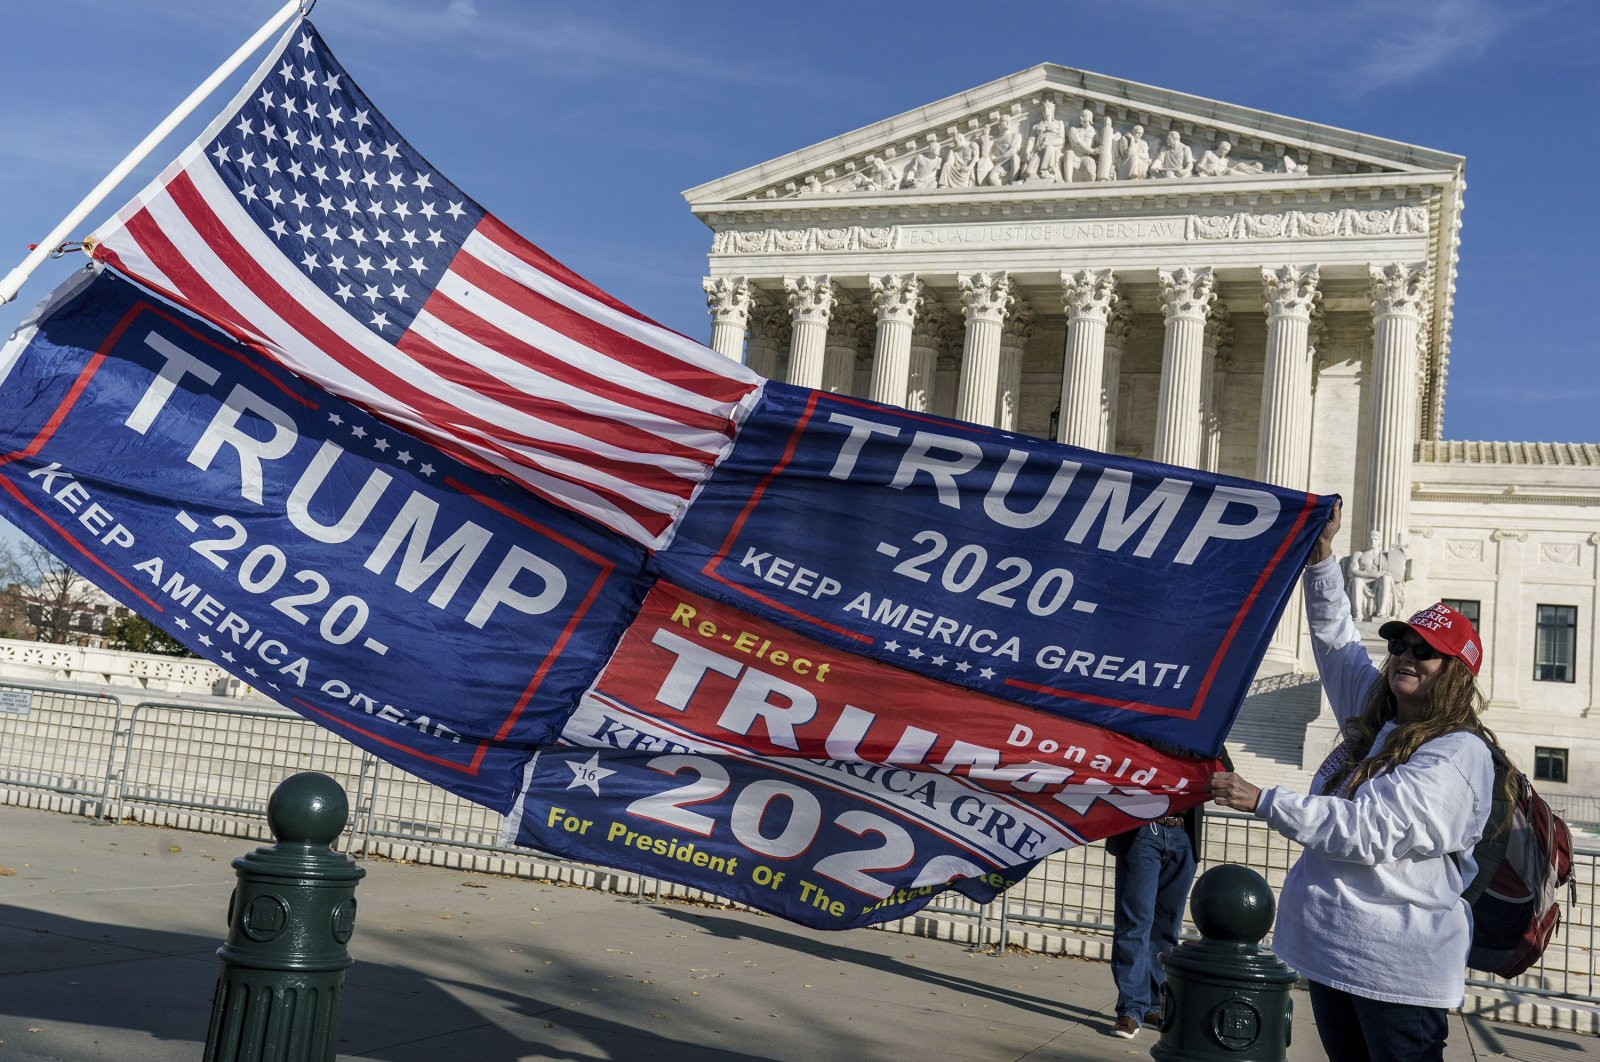 Kathy Kratt of Orlando, Florida, displays her Trump flags as she and other protesters demonstrate their support for President Donald Trump at the U.S. Supreme Court in Washington, Dec. 11, 2020. (AP Photo)